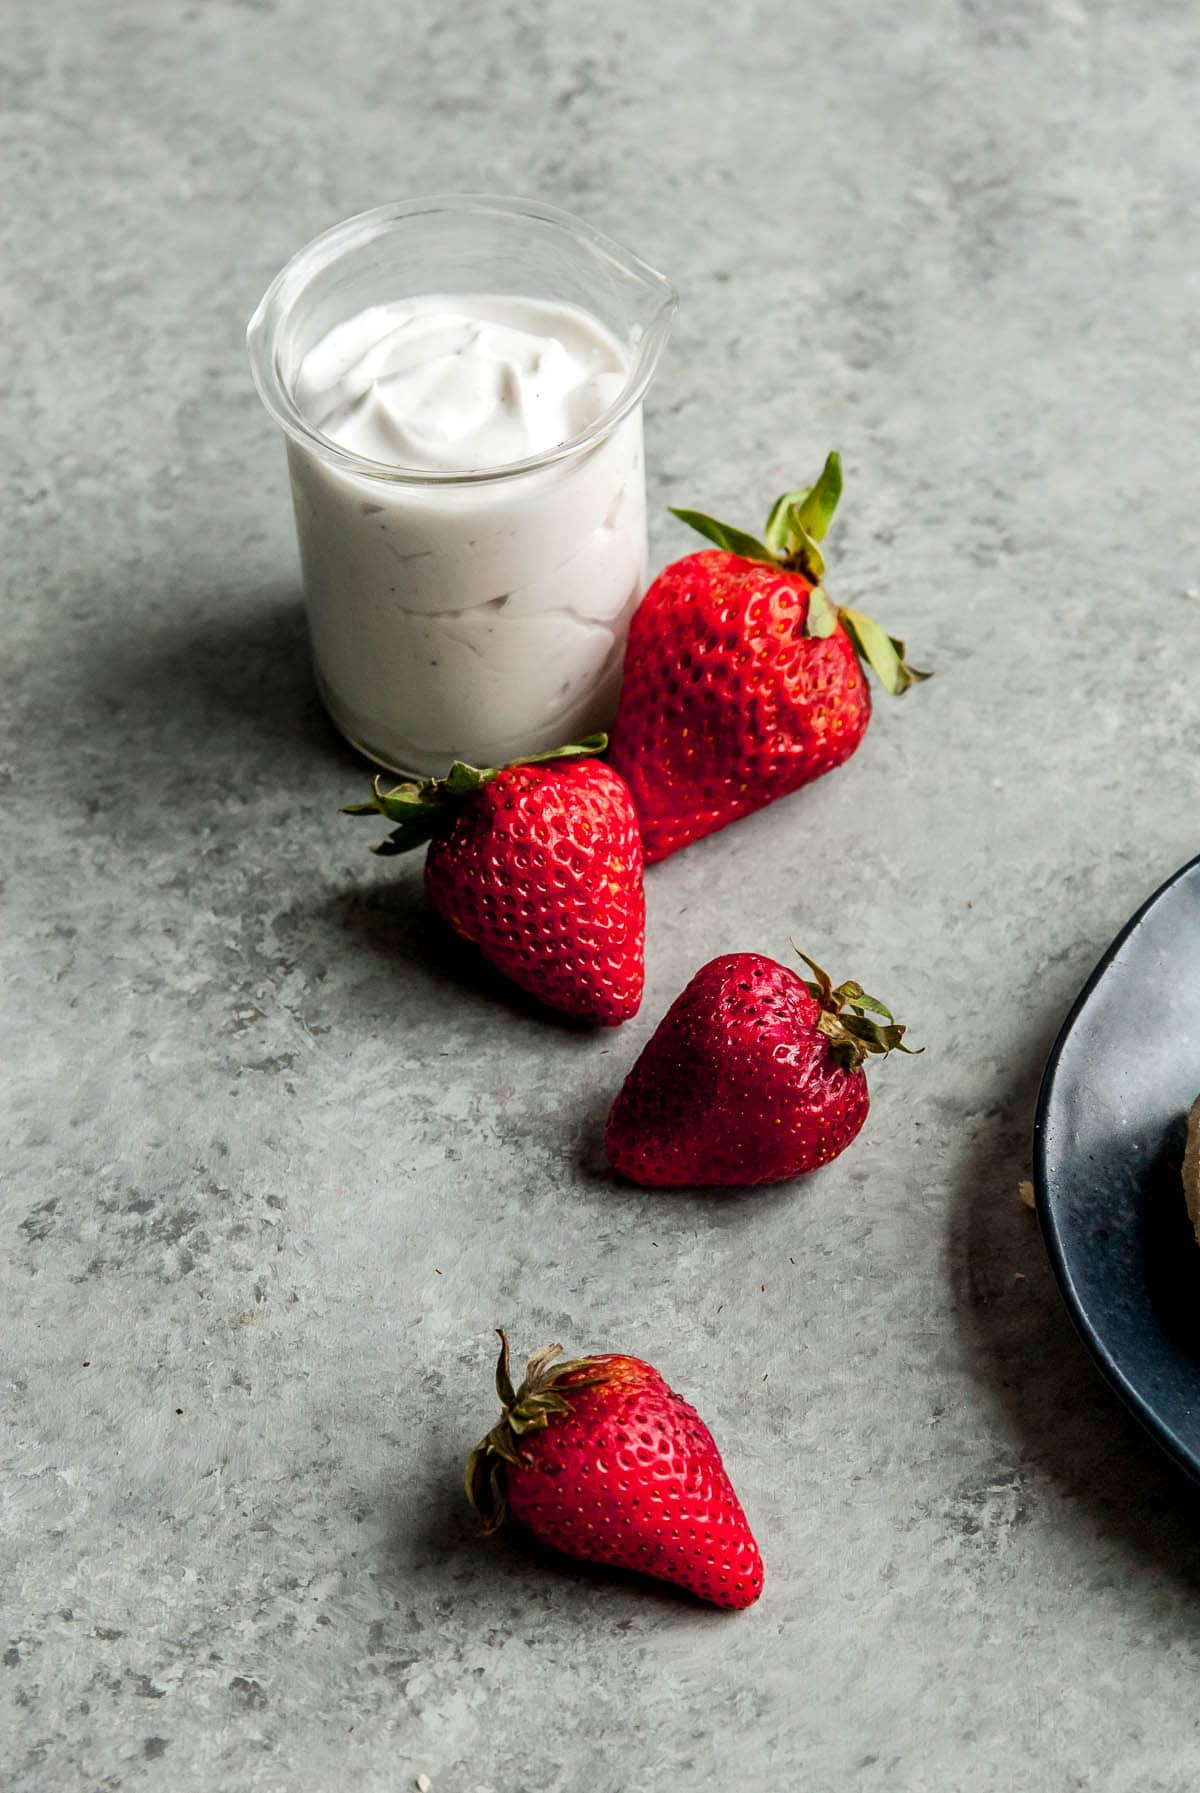 strawberries on a grey background